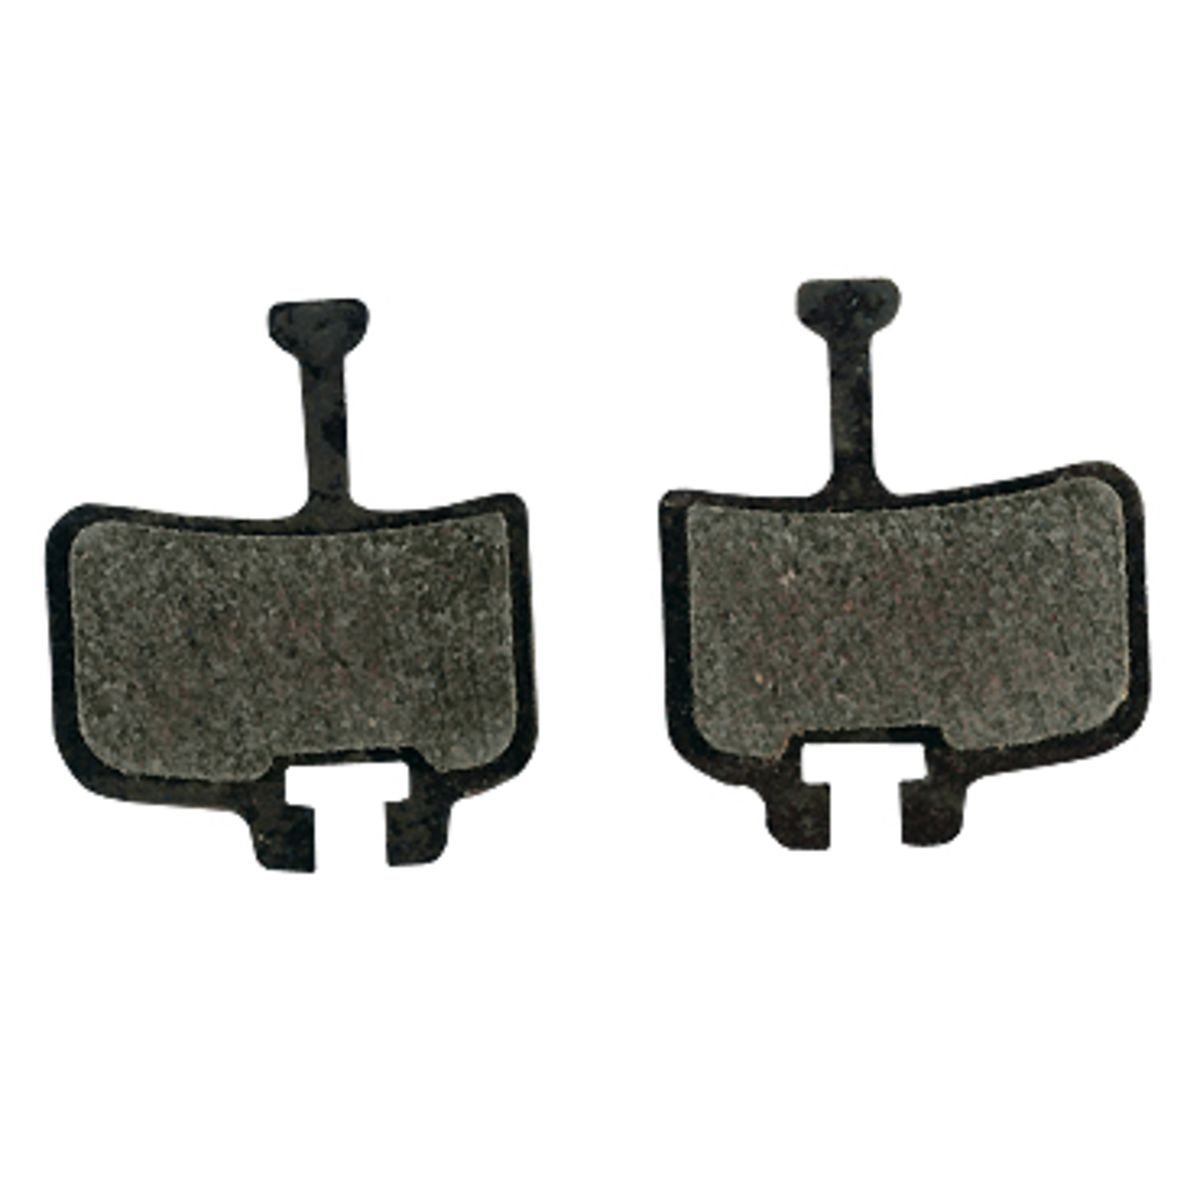 disc brake pads for Avid